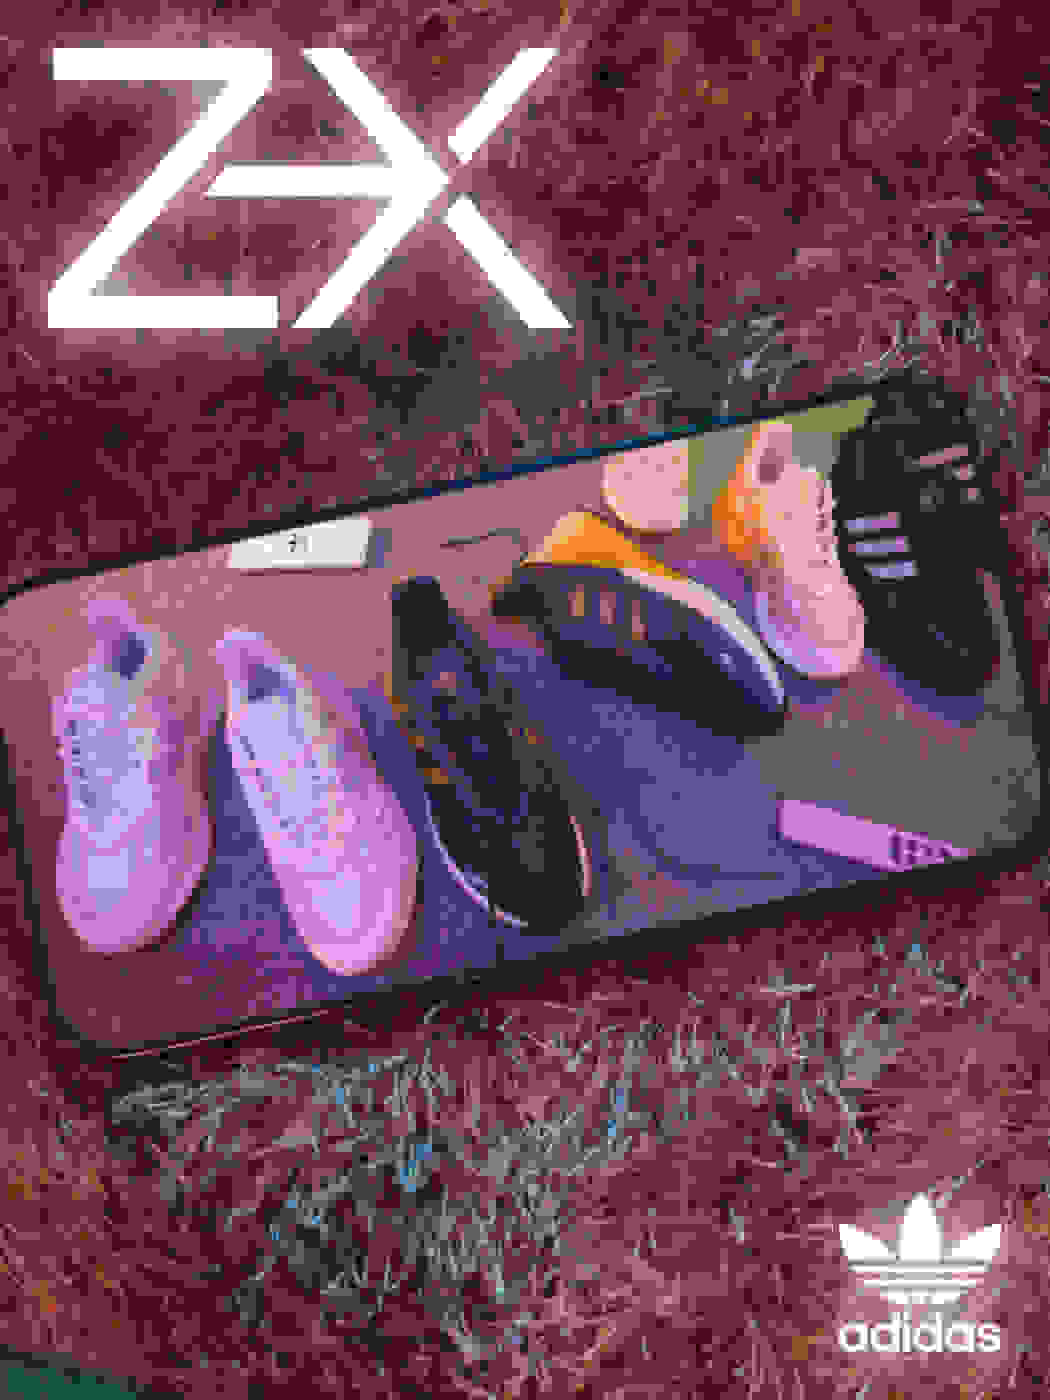 Scattered ZX shoes are seen on a cell phone screen that is lying on a carpet.